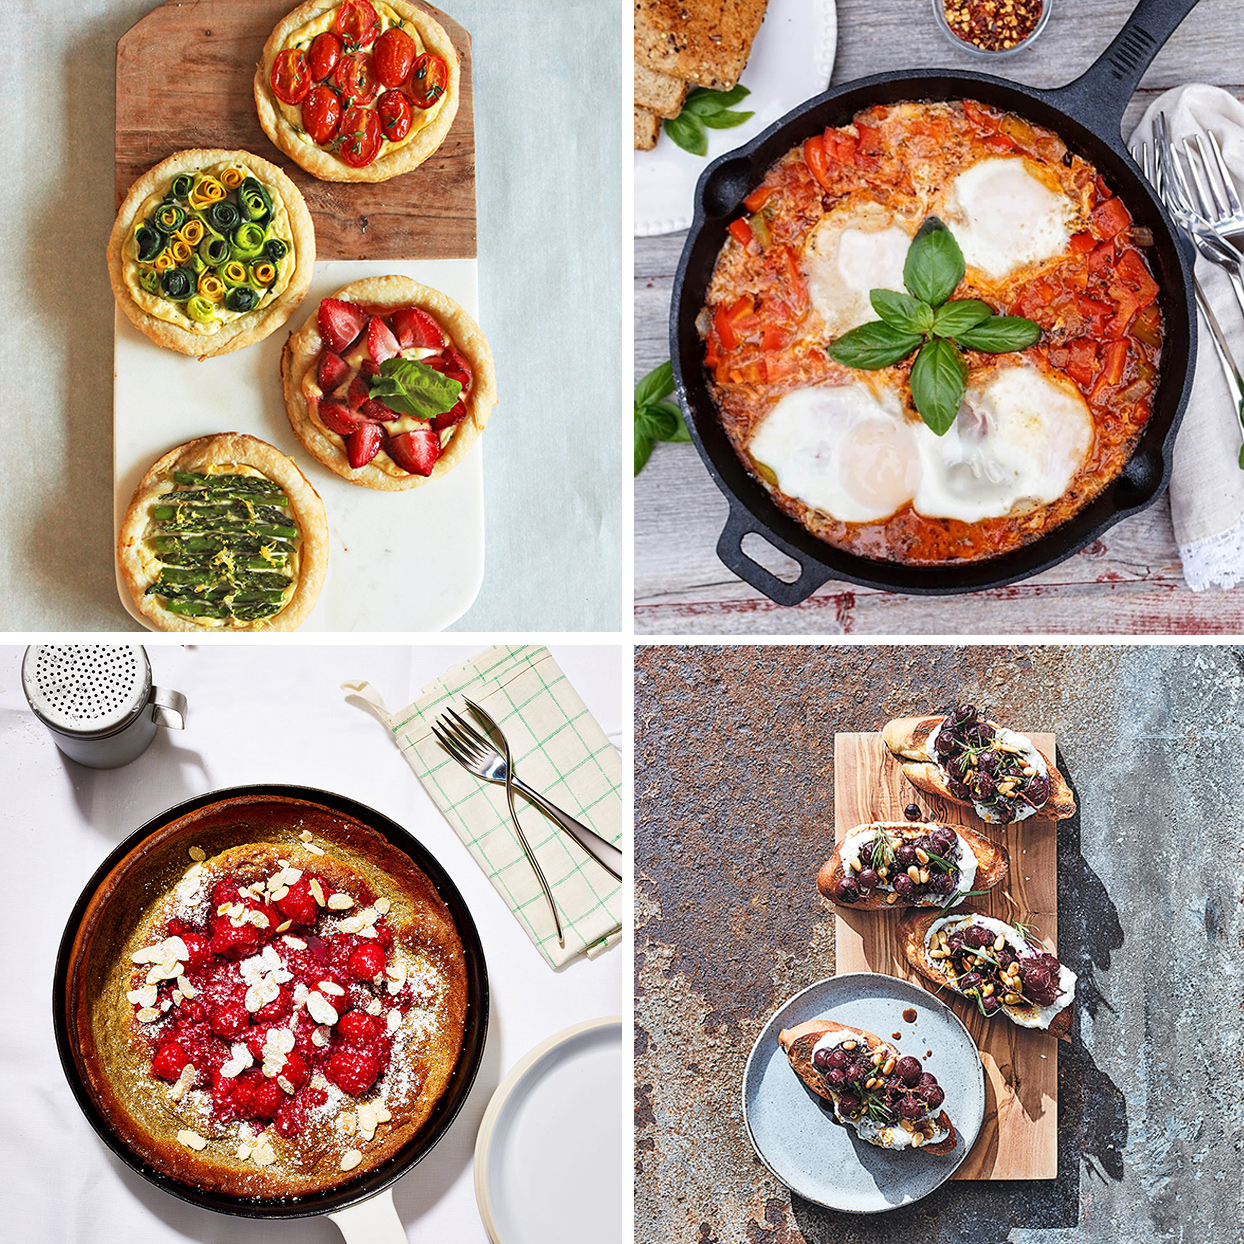 Healthy Brunch Recipes to Make On Weekends